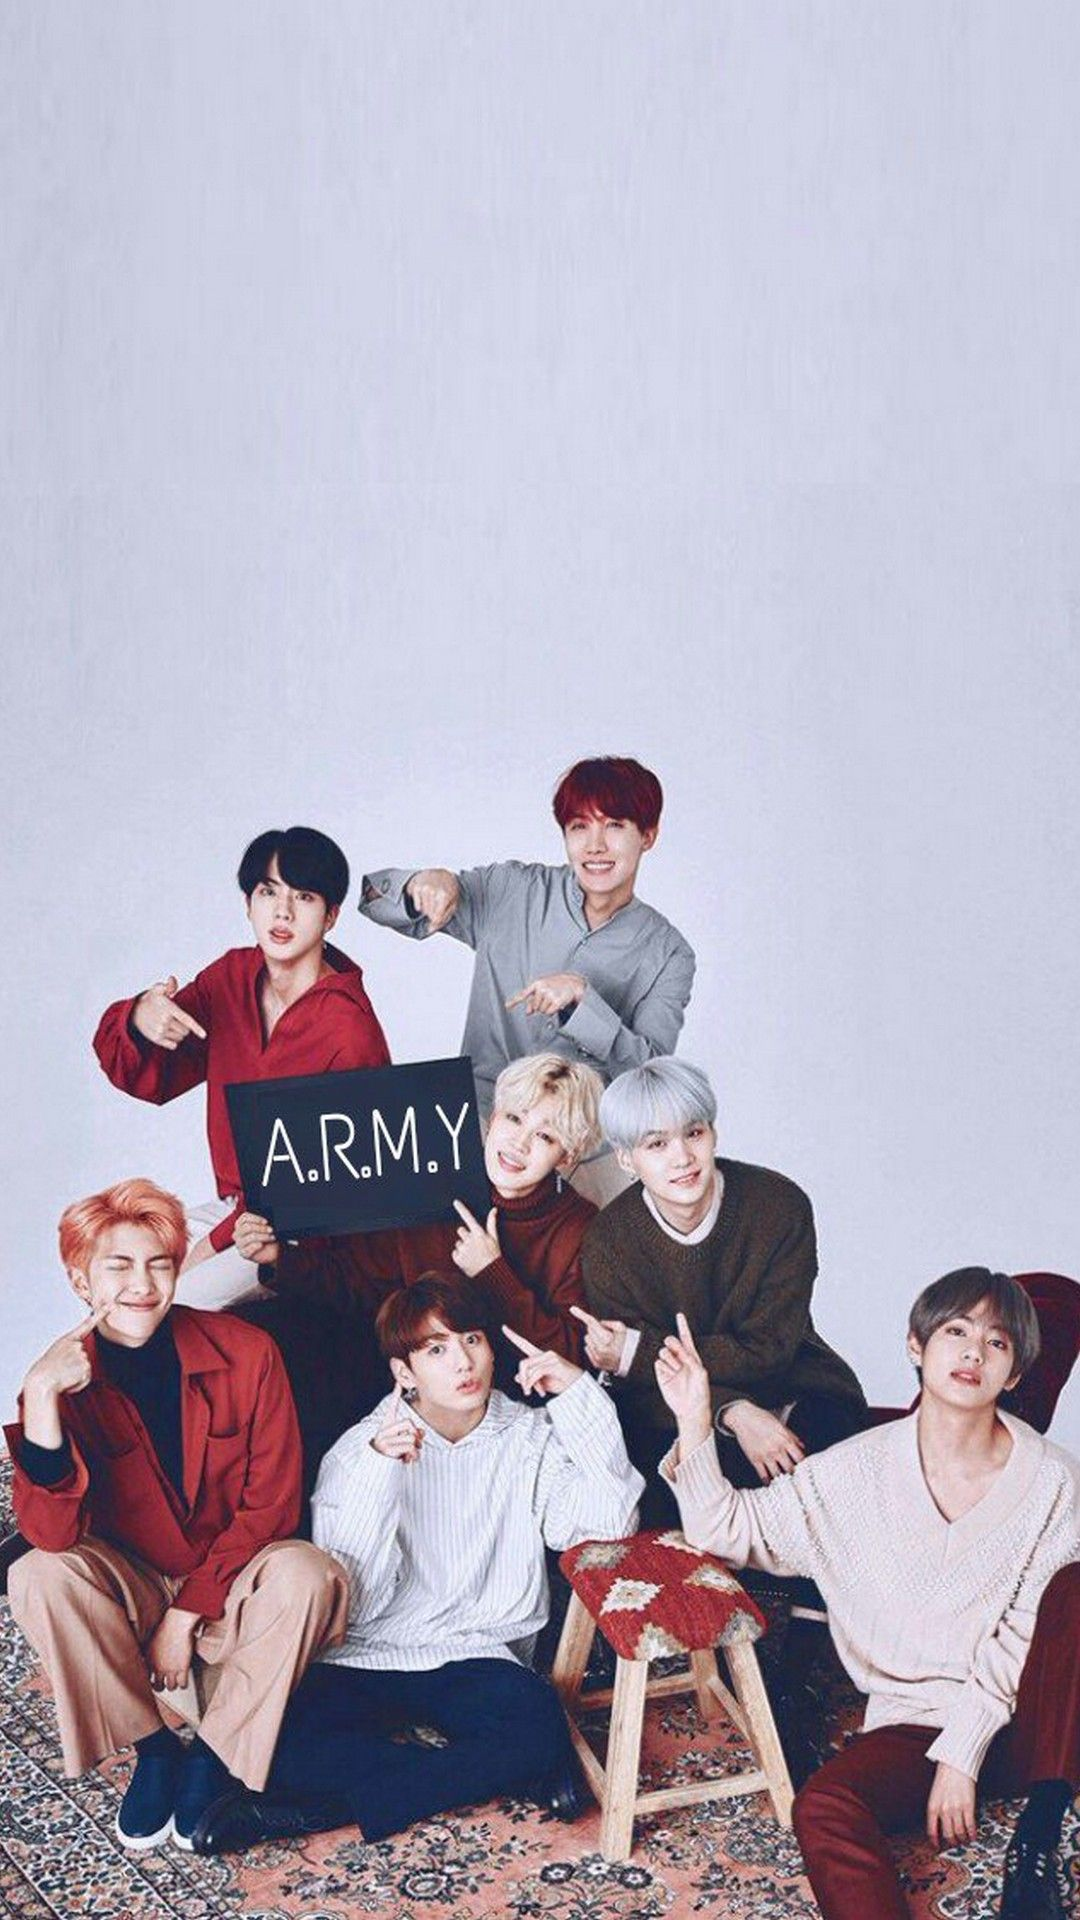 Pin By On Bts In 2020 Bts Group Photo Wallpaper Bts Wallpaper Bts Pictures